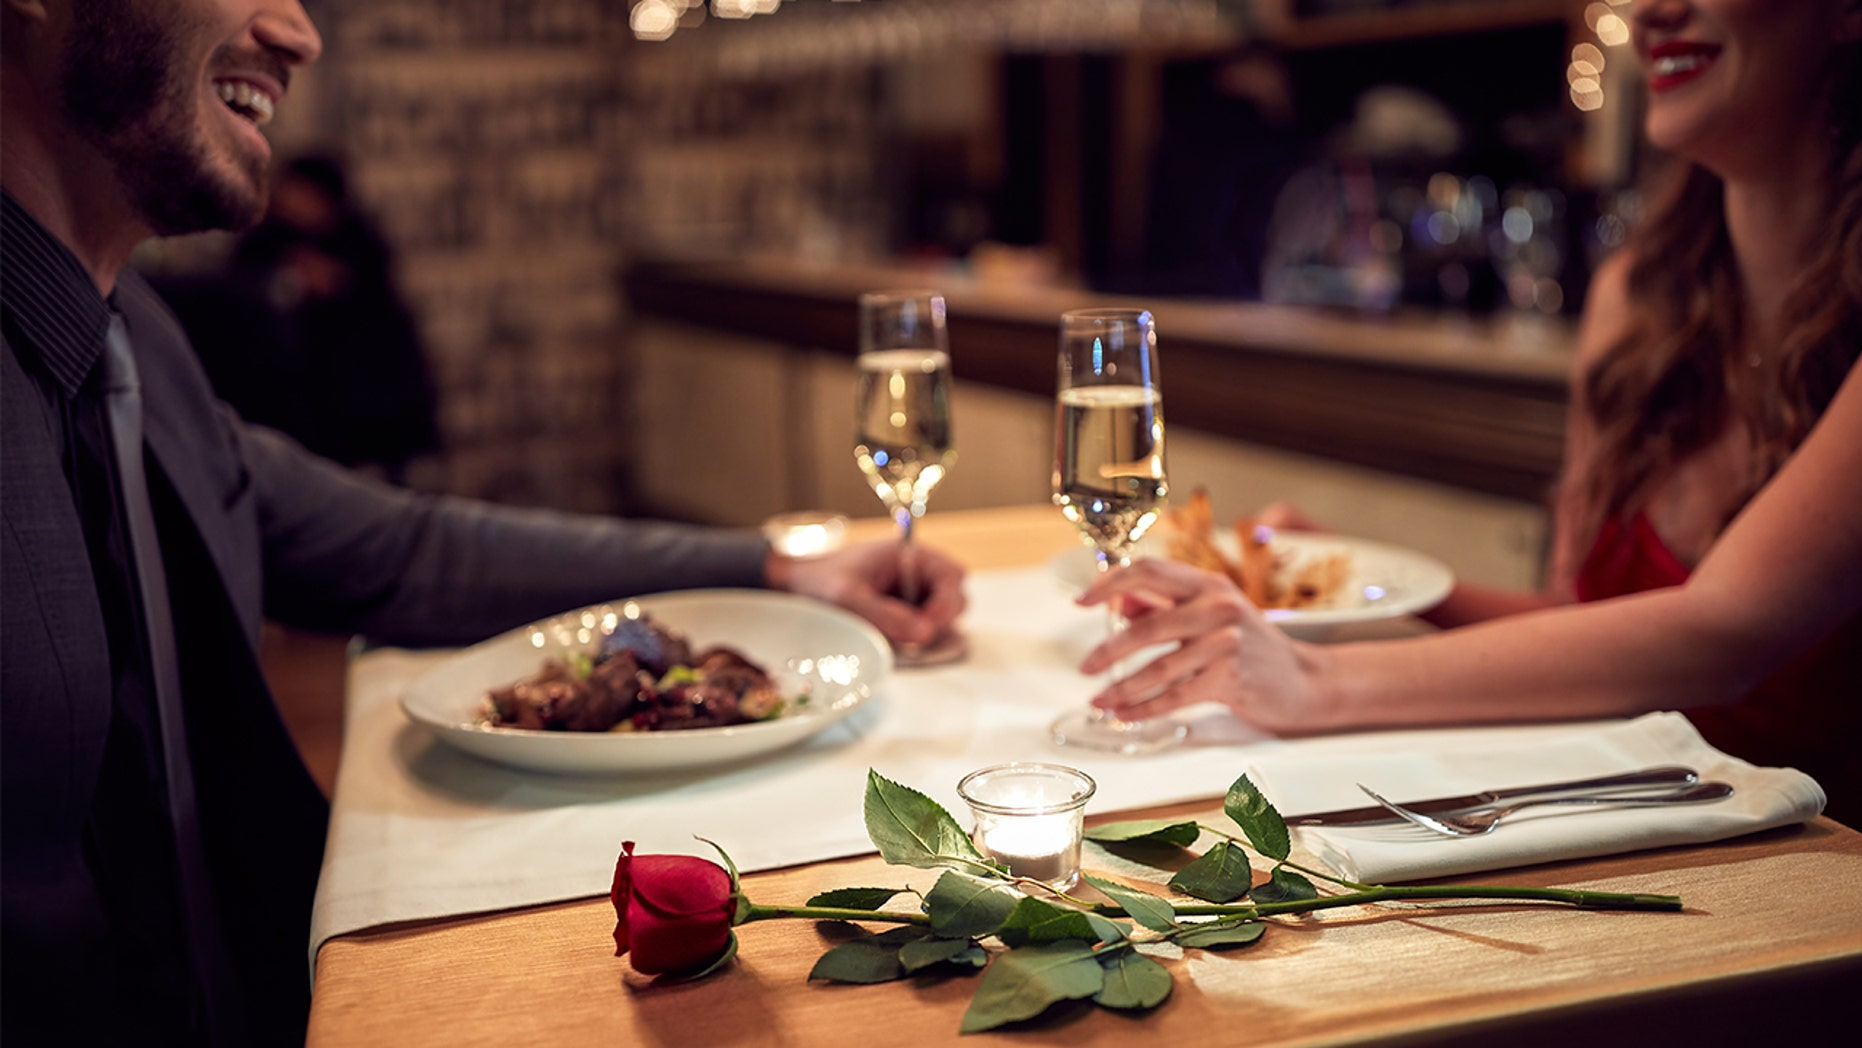 Don't fret your Valentine's Day plans. Just book a table at one of the 25 most romantic restaurants in the U.S., according to Yelp.